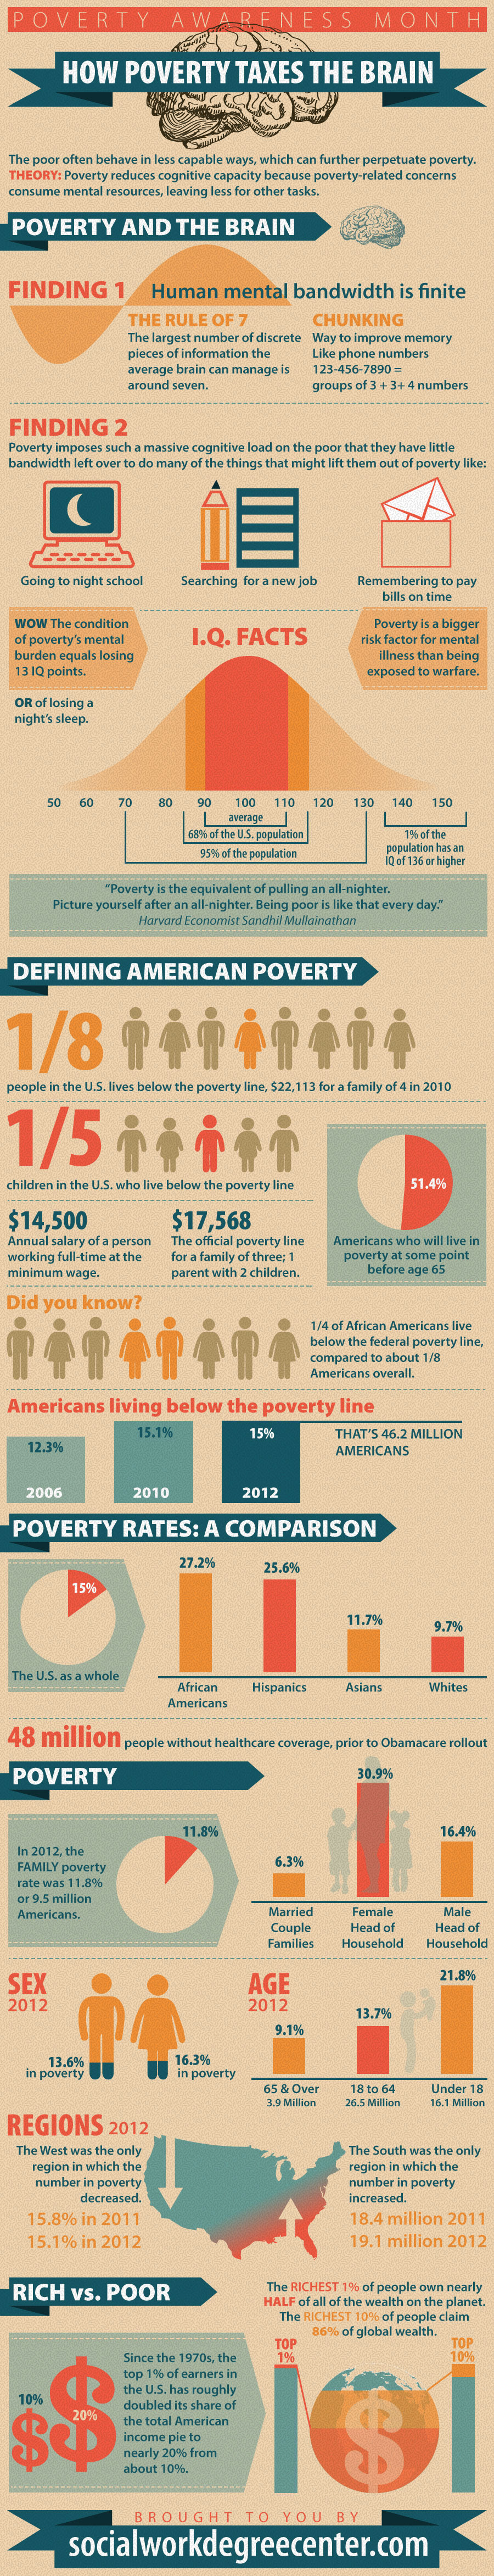 """""""Poverty and the Brain"""" width=""""500"""" border=""""0"""" /></a><br />Source: <a href=""""http://www.socialworkdegreecenter.com/"""">SocialWorkDegreeCenter.comt</a>"""